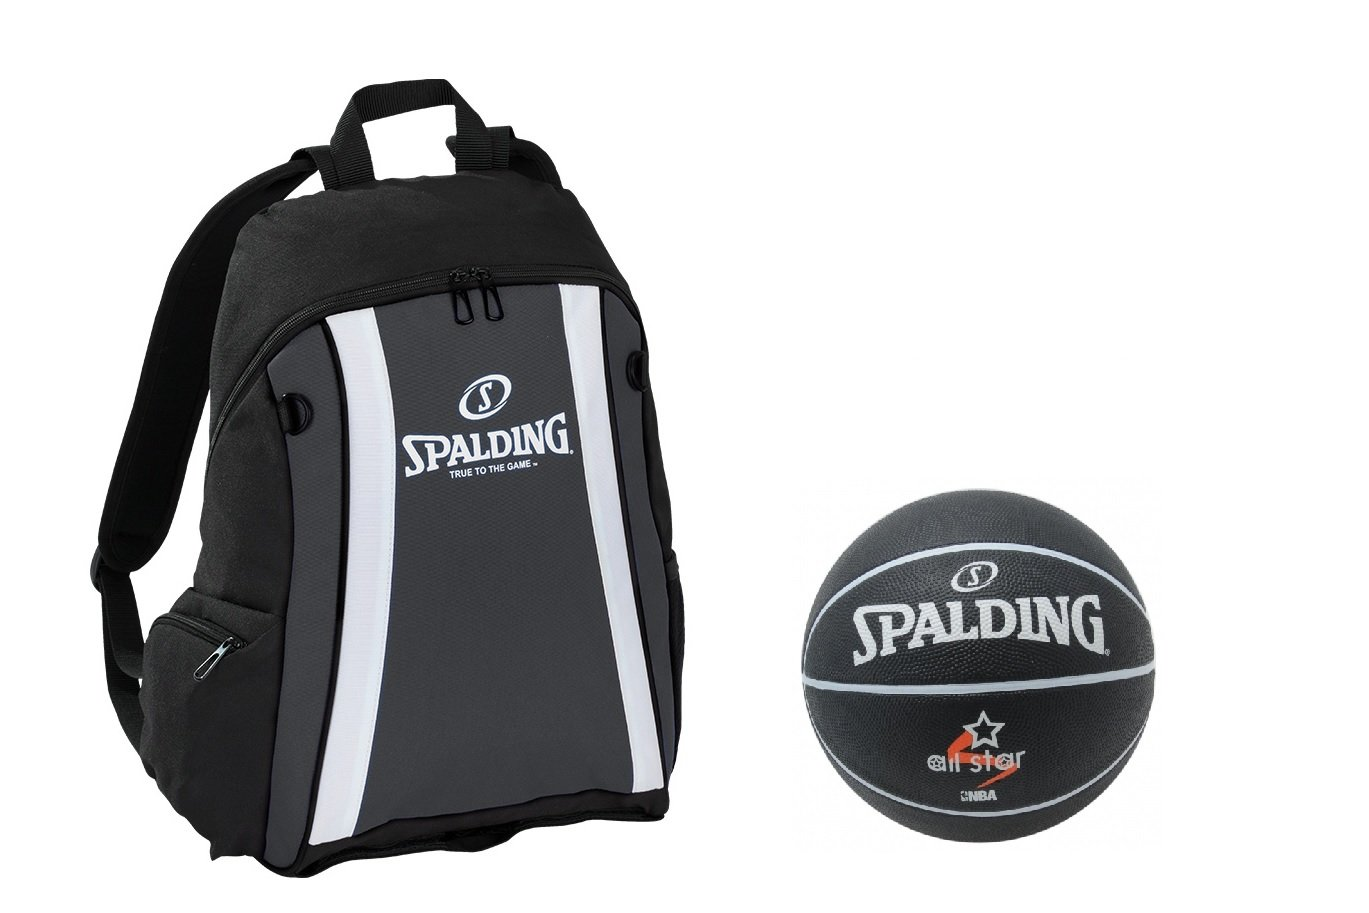 Spalding Set mochila negro con red y pelota Fútbol, 6526: Amazon ...